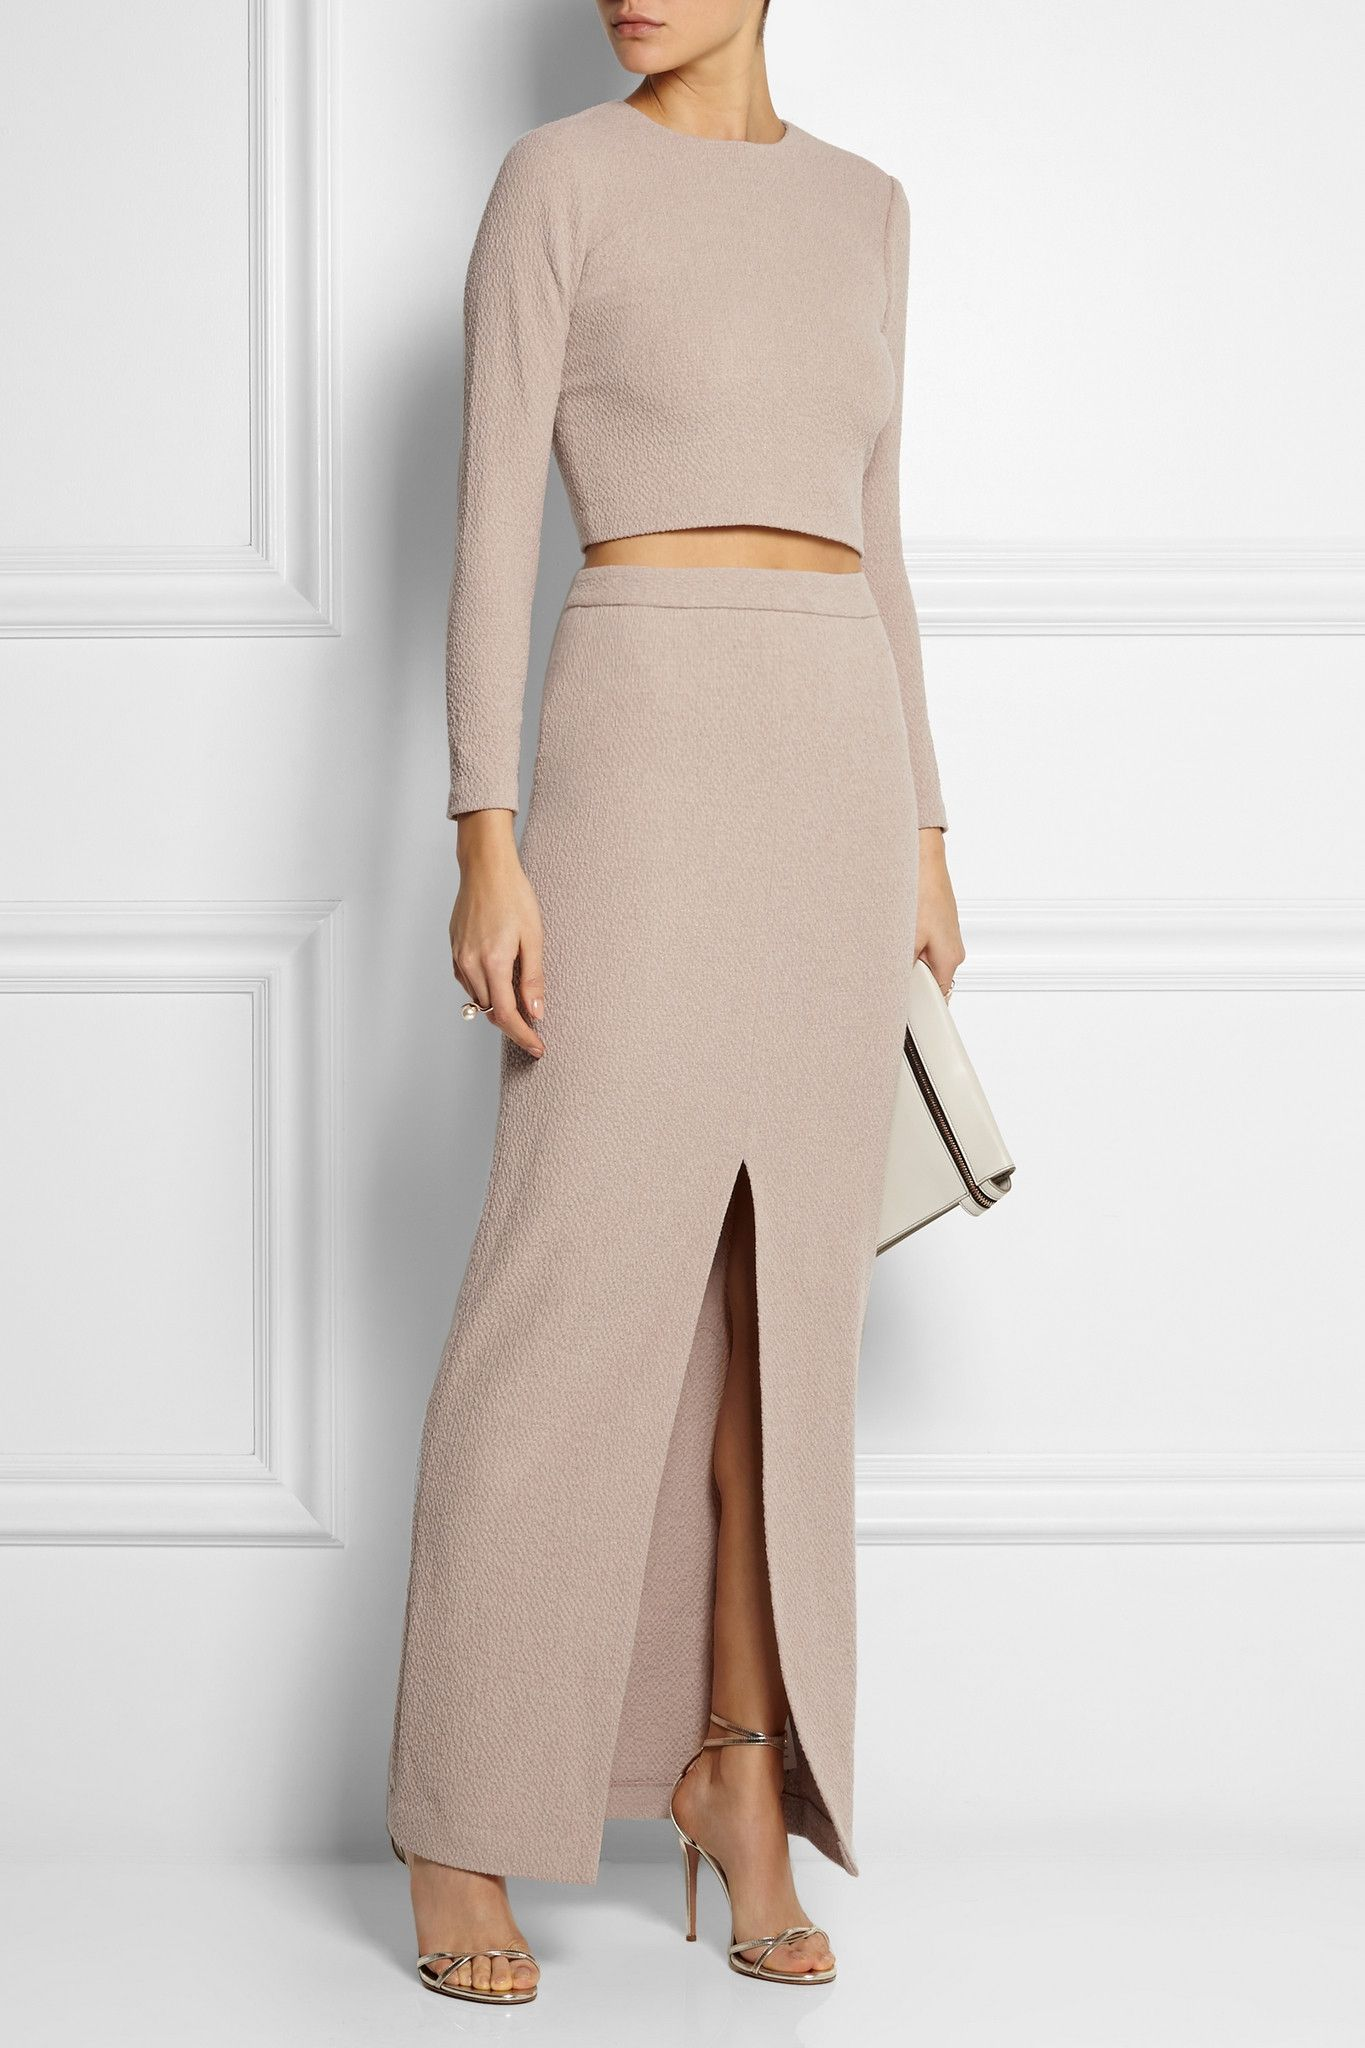 ALICE + OLIVIA Abby stretch-cloqué maxi skirt €255 http://www.net-a-porter.com/products/502997